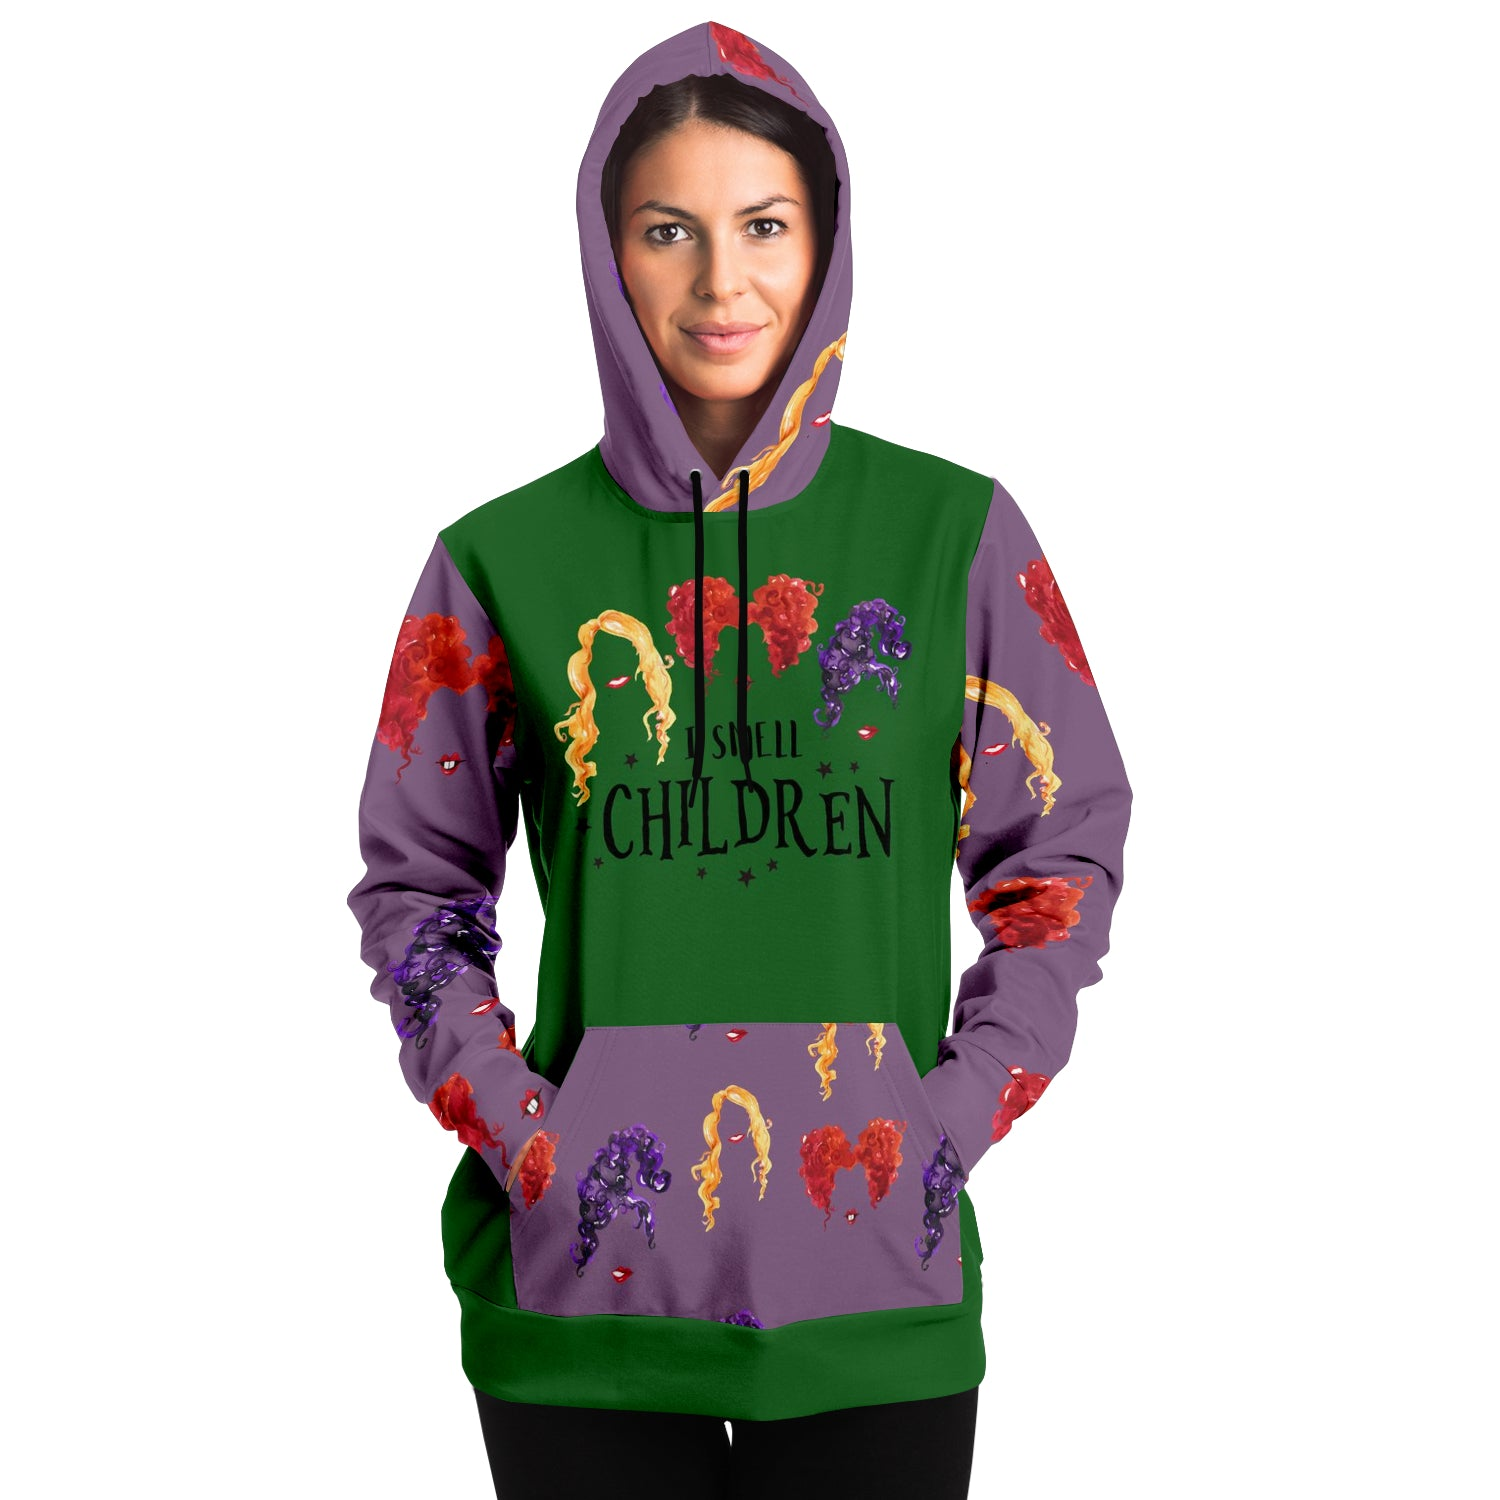 I Smell Children Pullover Hoodie